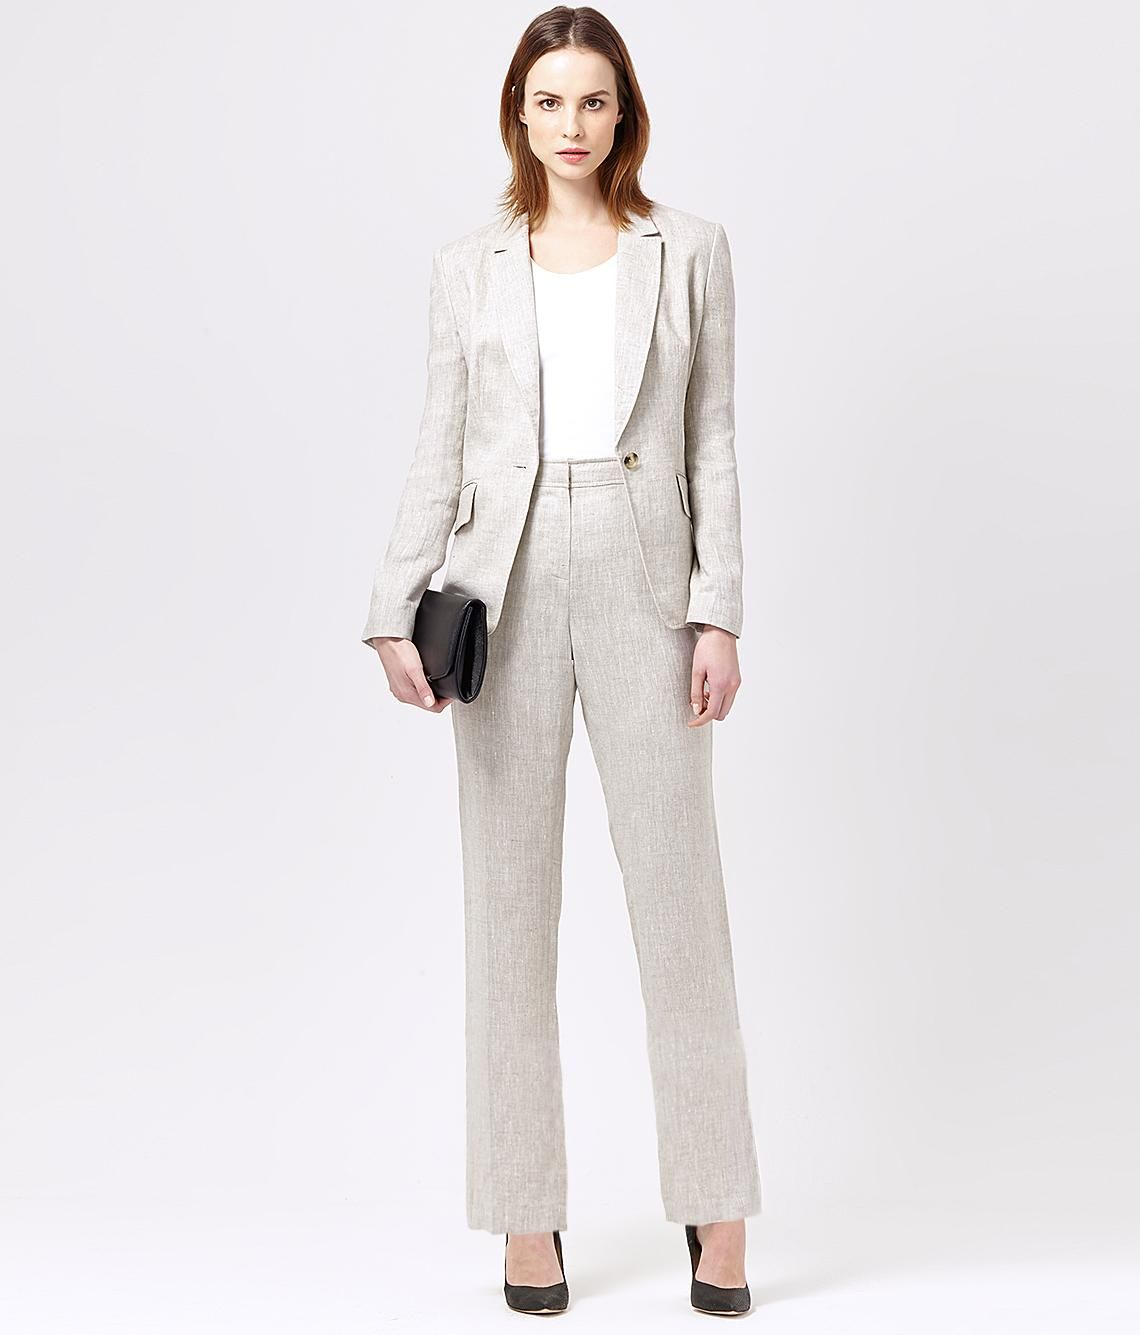 75daa247ce Pure Linen Trouser Suit | Women's Suits | Austin Reed | Richard III ...